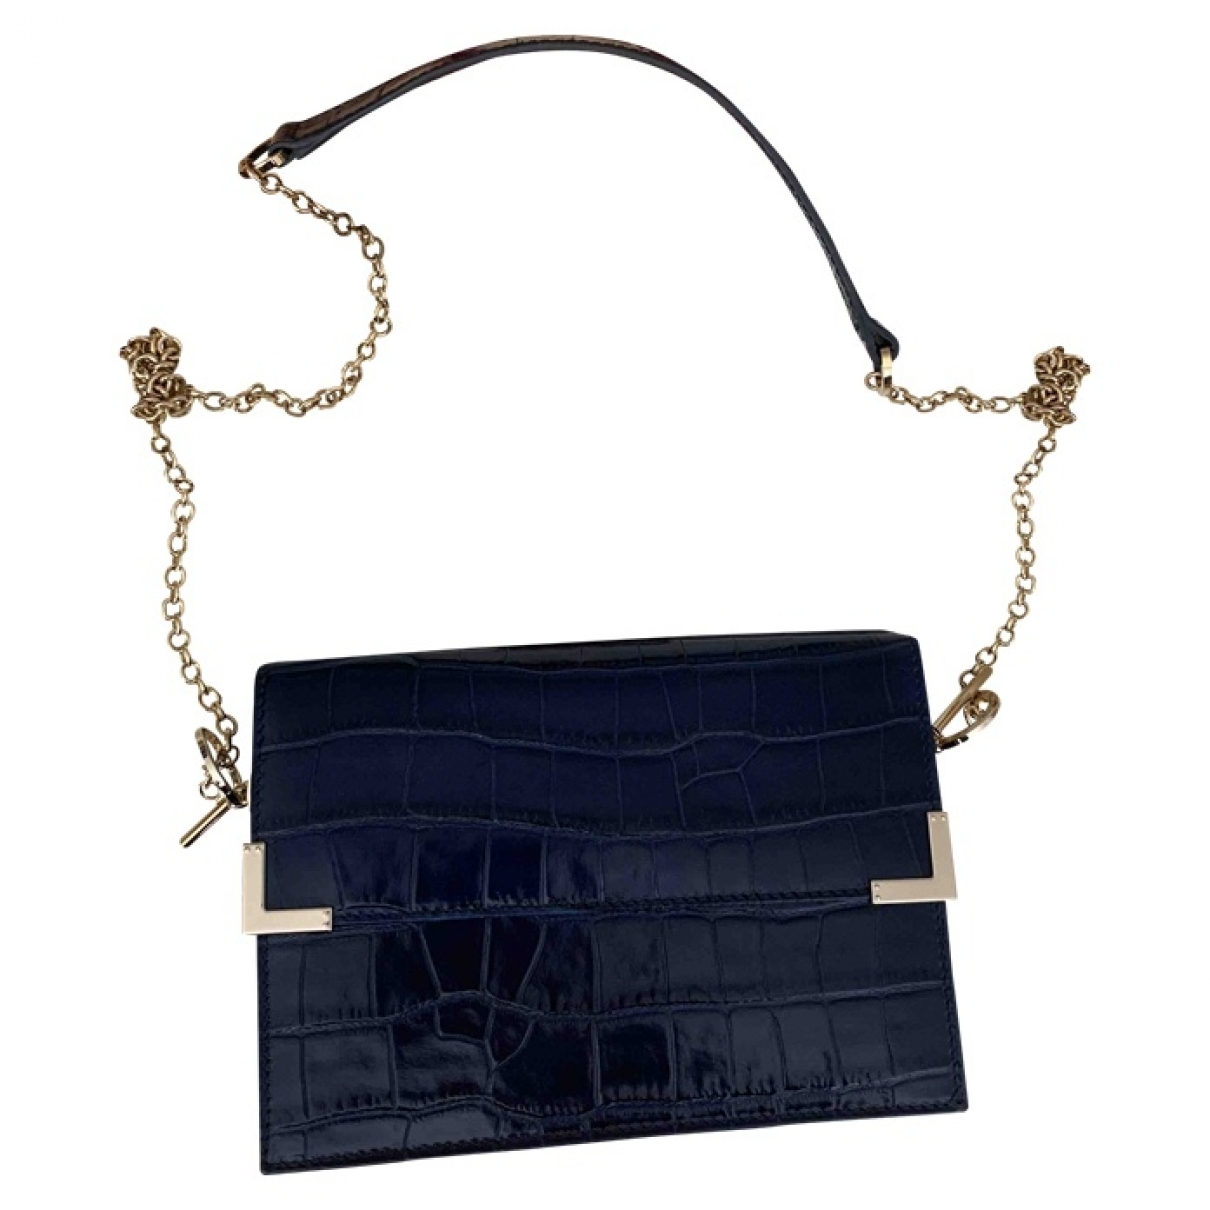 Aspinal Of London \N Navy Patent leather handbag for Women \N